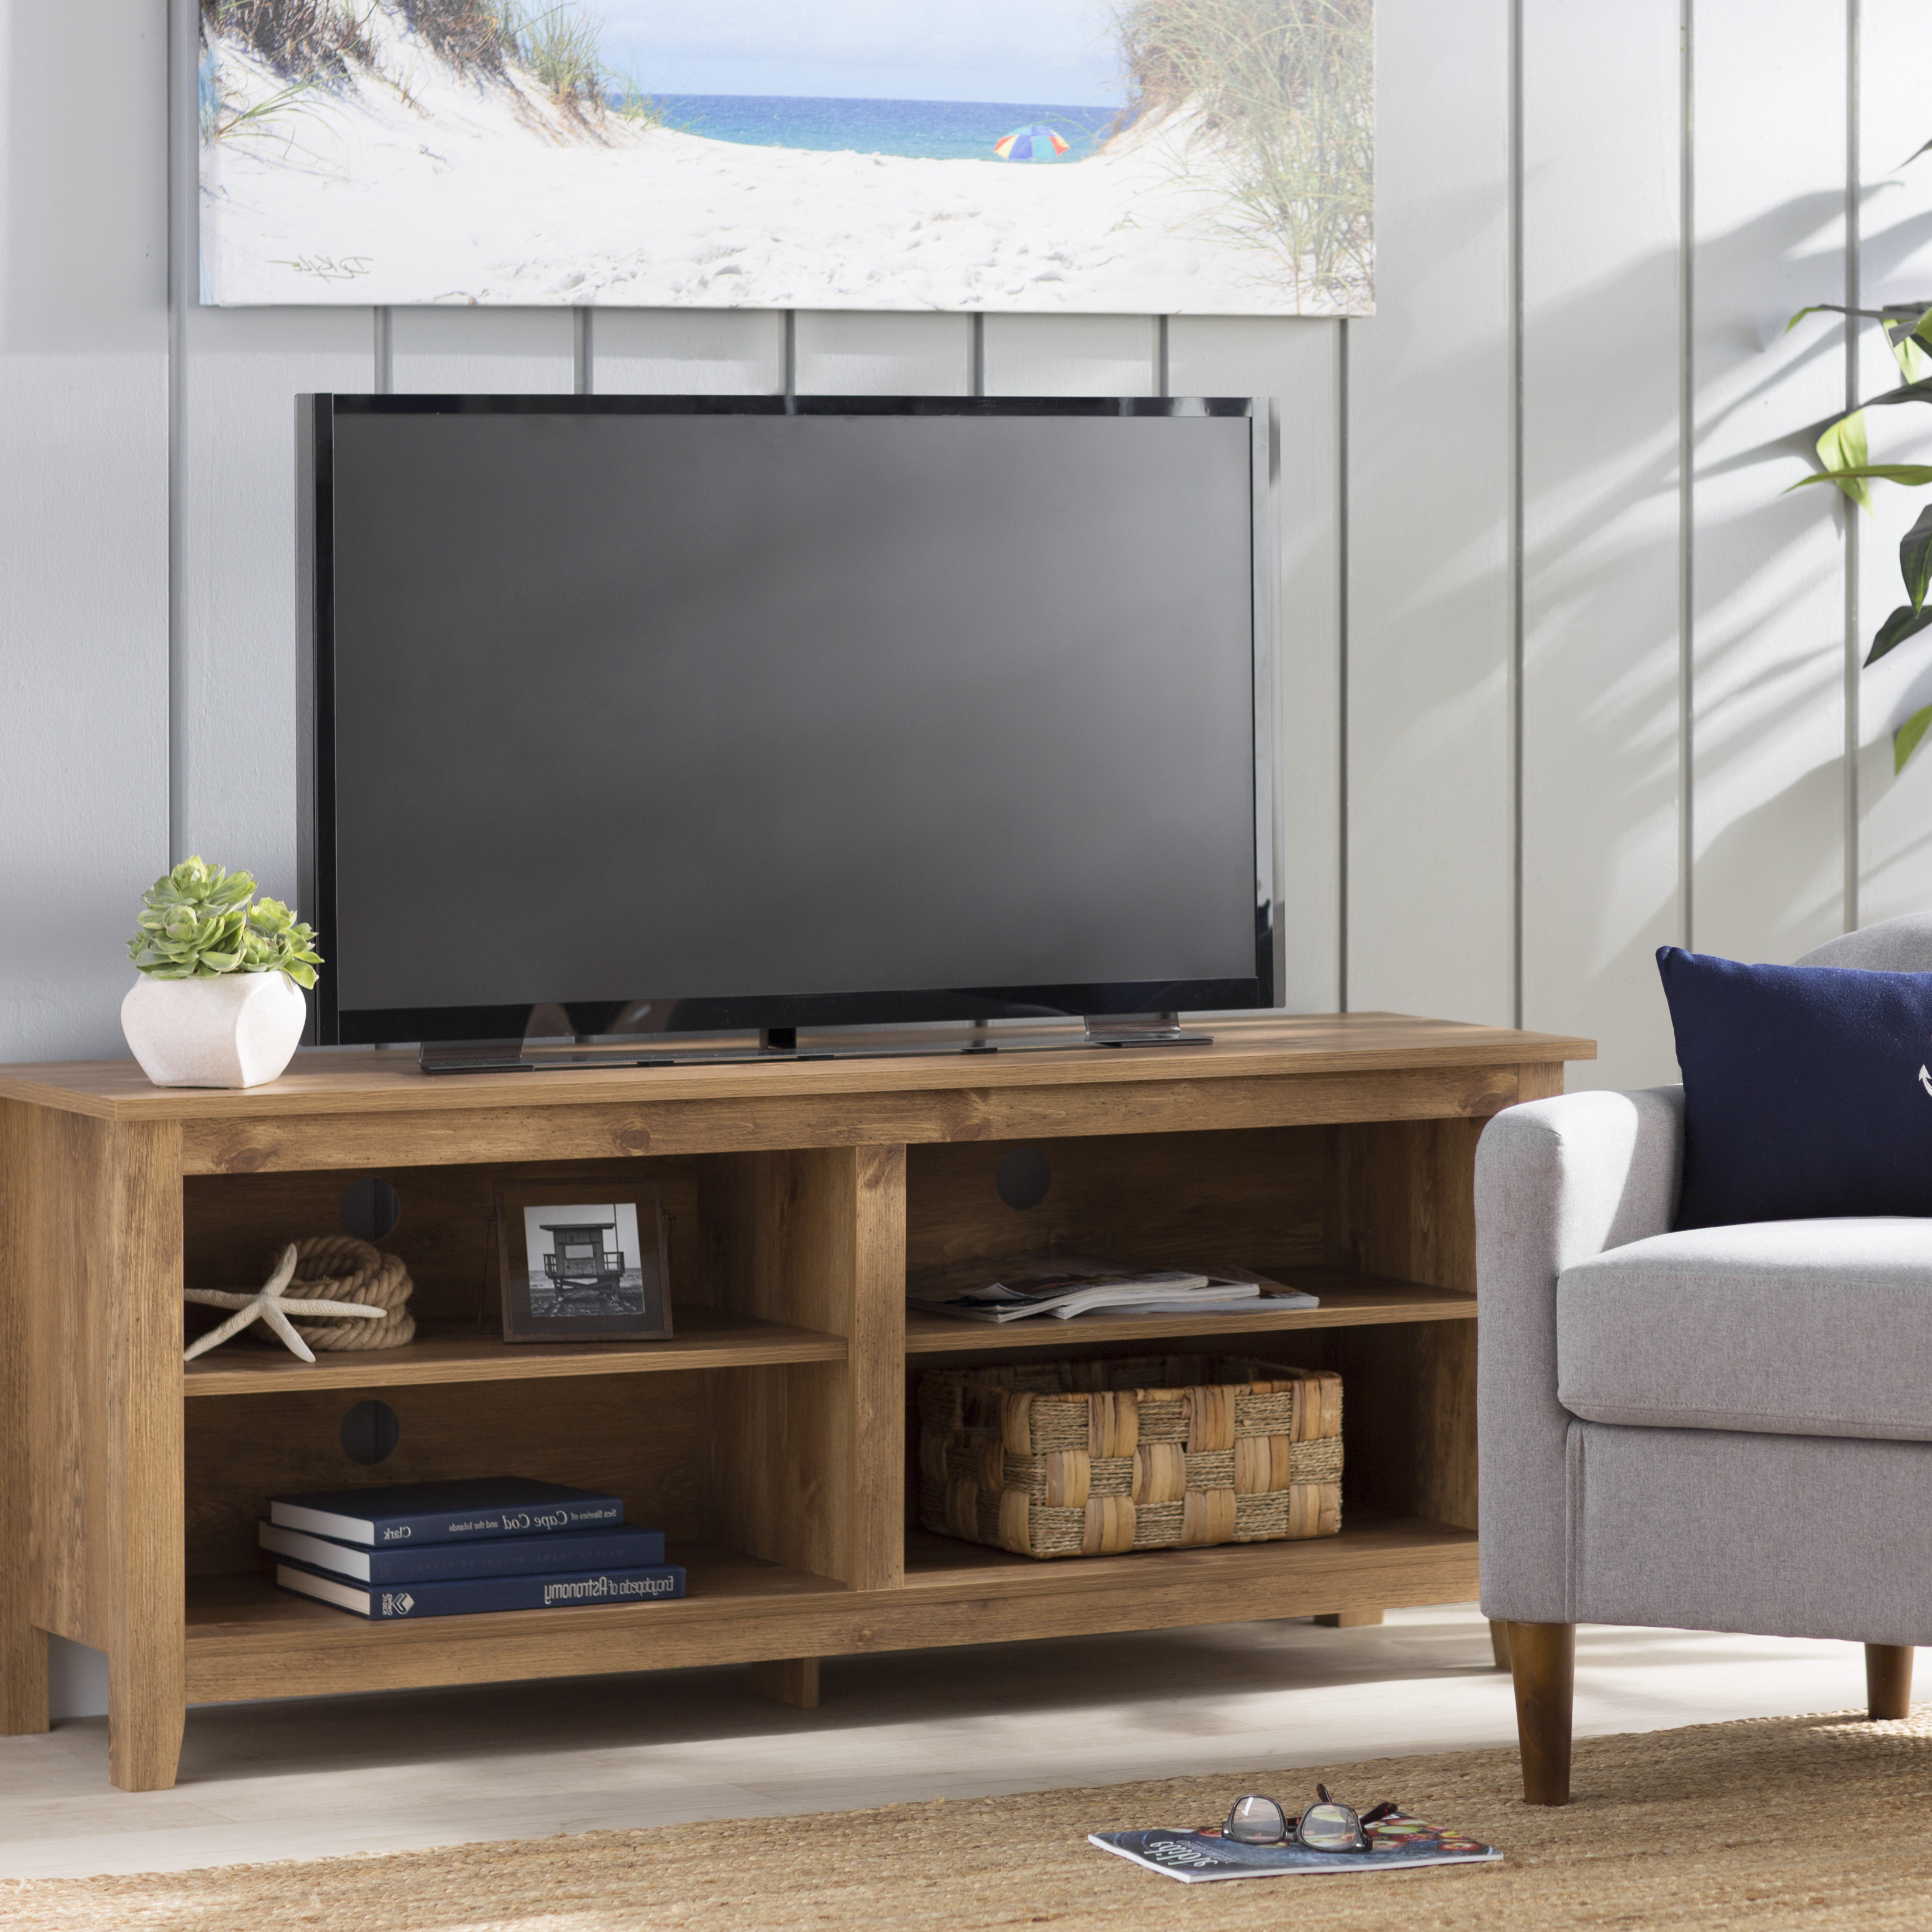 Wayfair Throughout Sinclair Blue 74 Inch Tv Stands (Gallery 17 of 20)